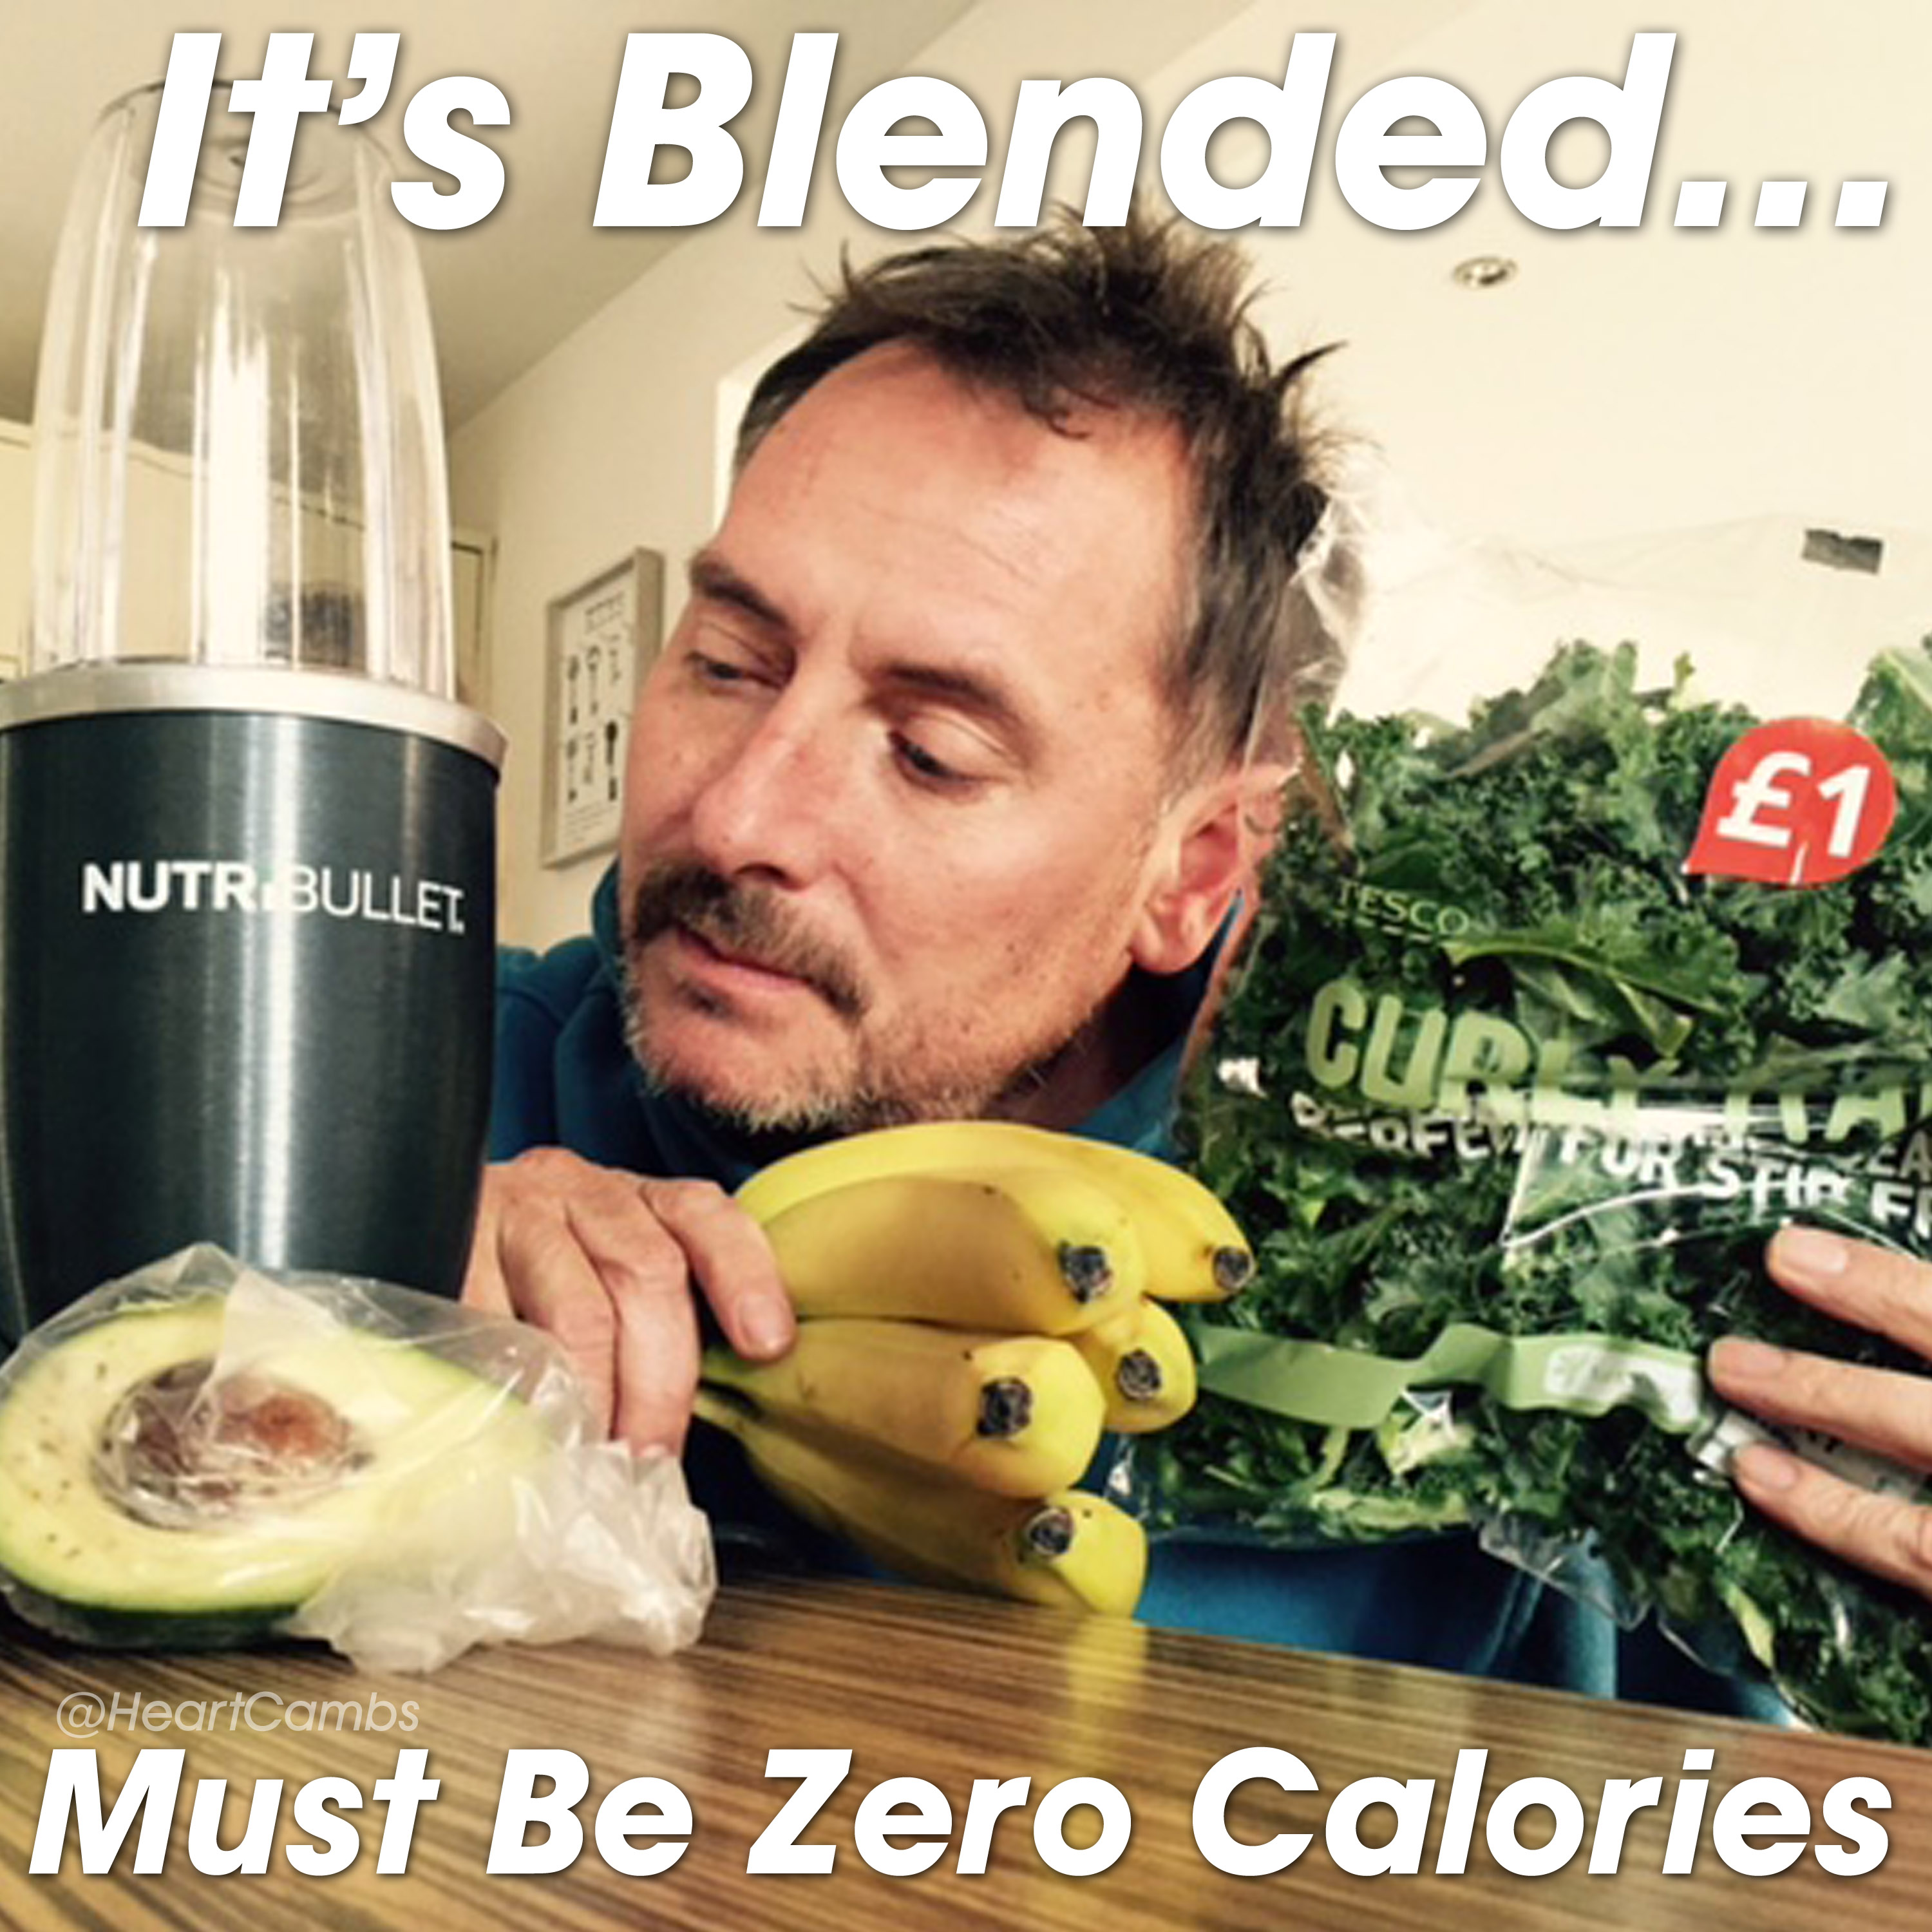 Kev with a Nutribullet